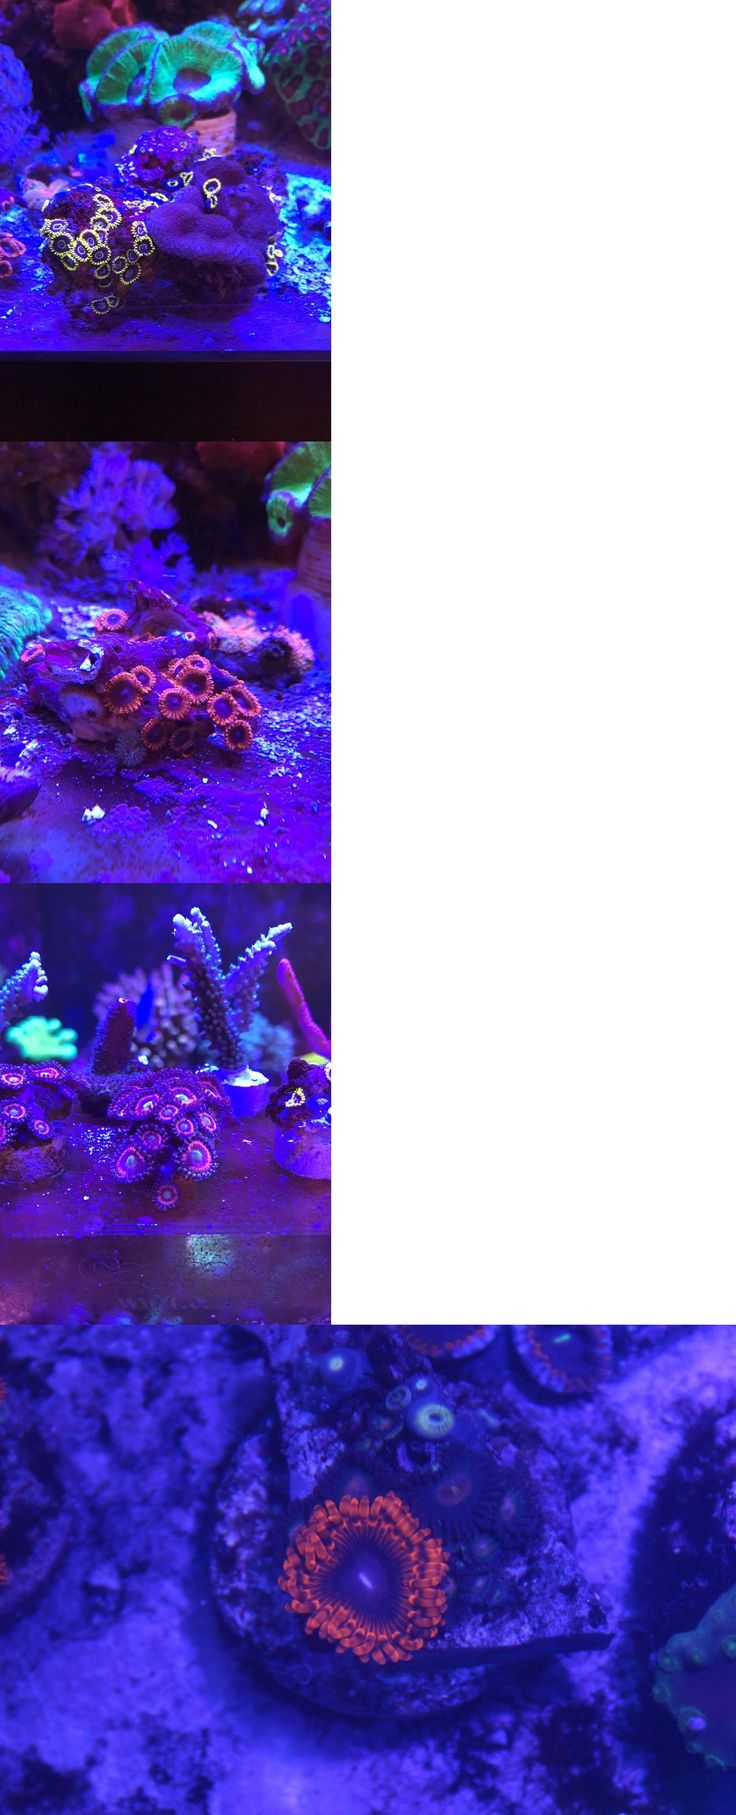 Coral and Live Rock 177797: Live Coral Zoanthid 4 Pack Mini Colonies Blue Hornet Lunar Eclipse ??? -> BUY IT NOW ONLY: $150 on eBay!